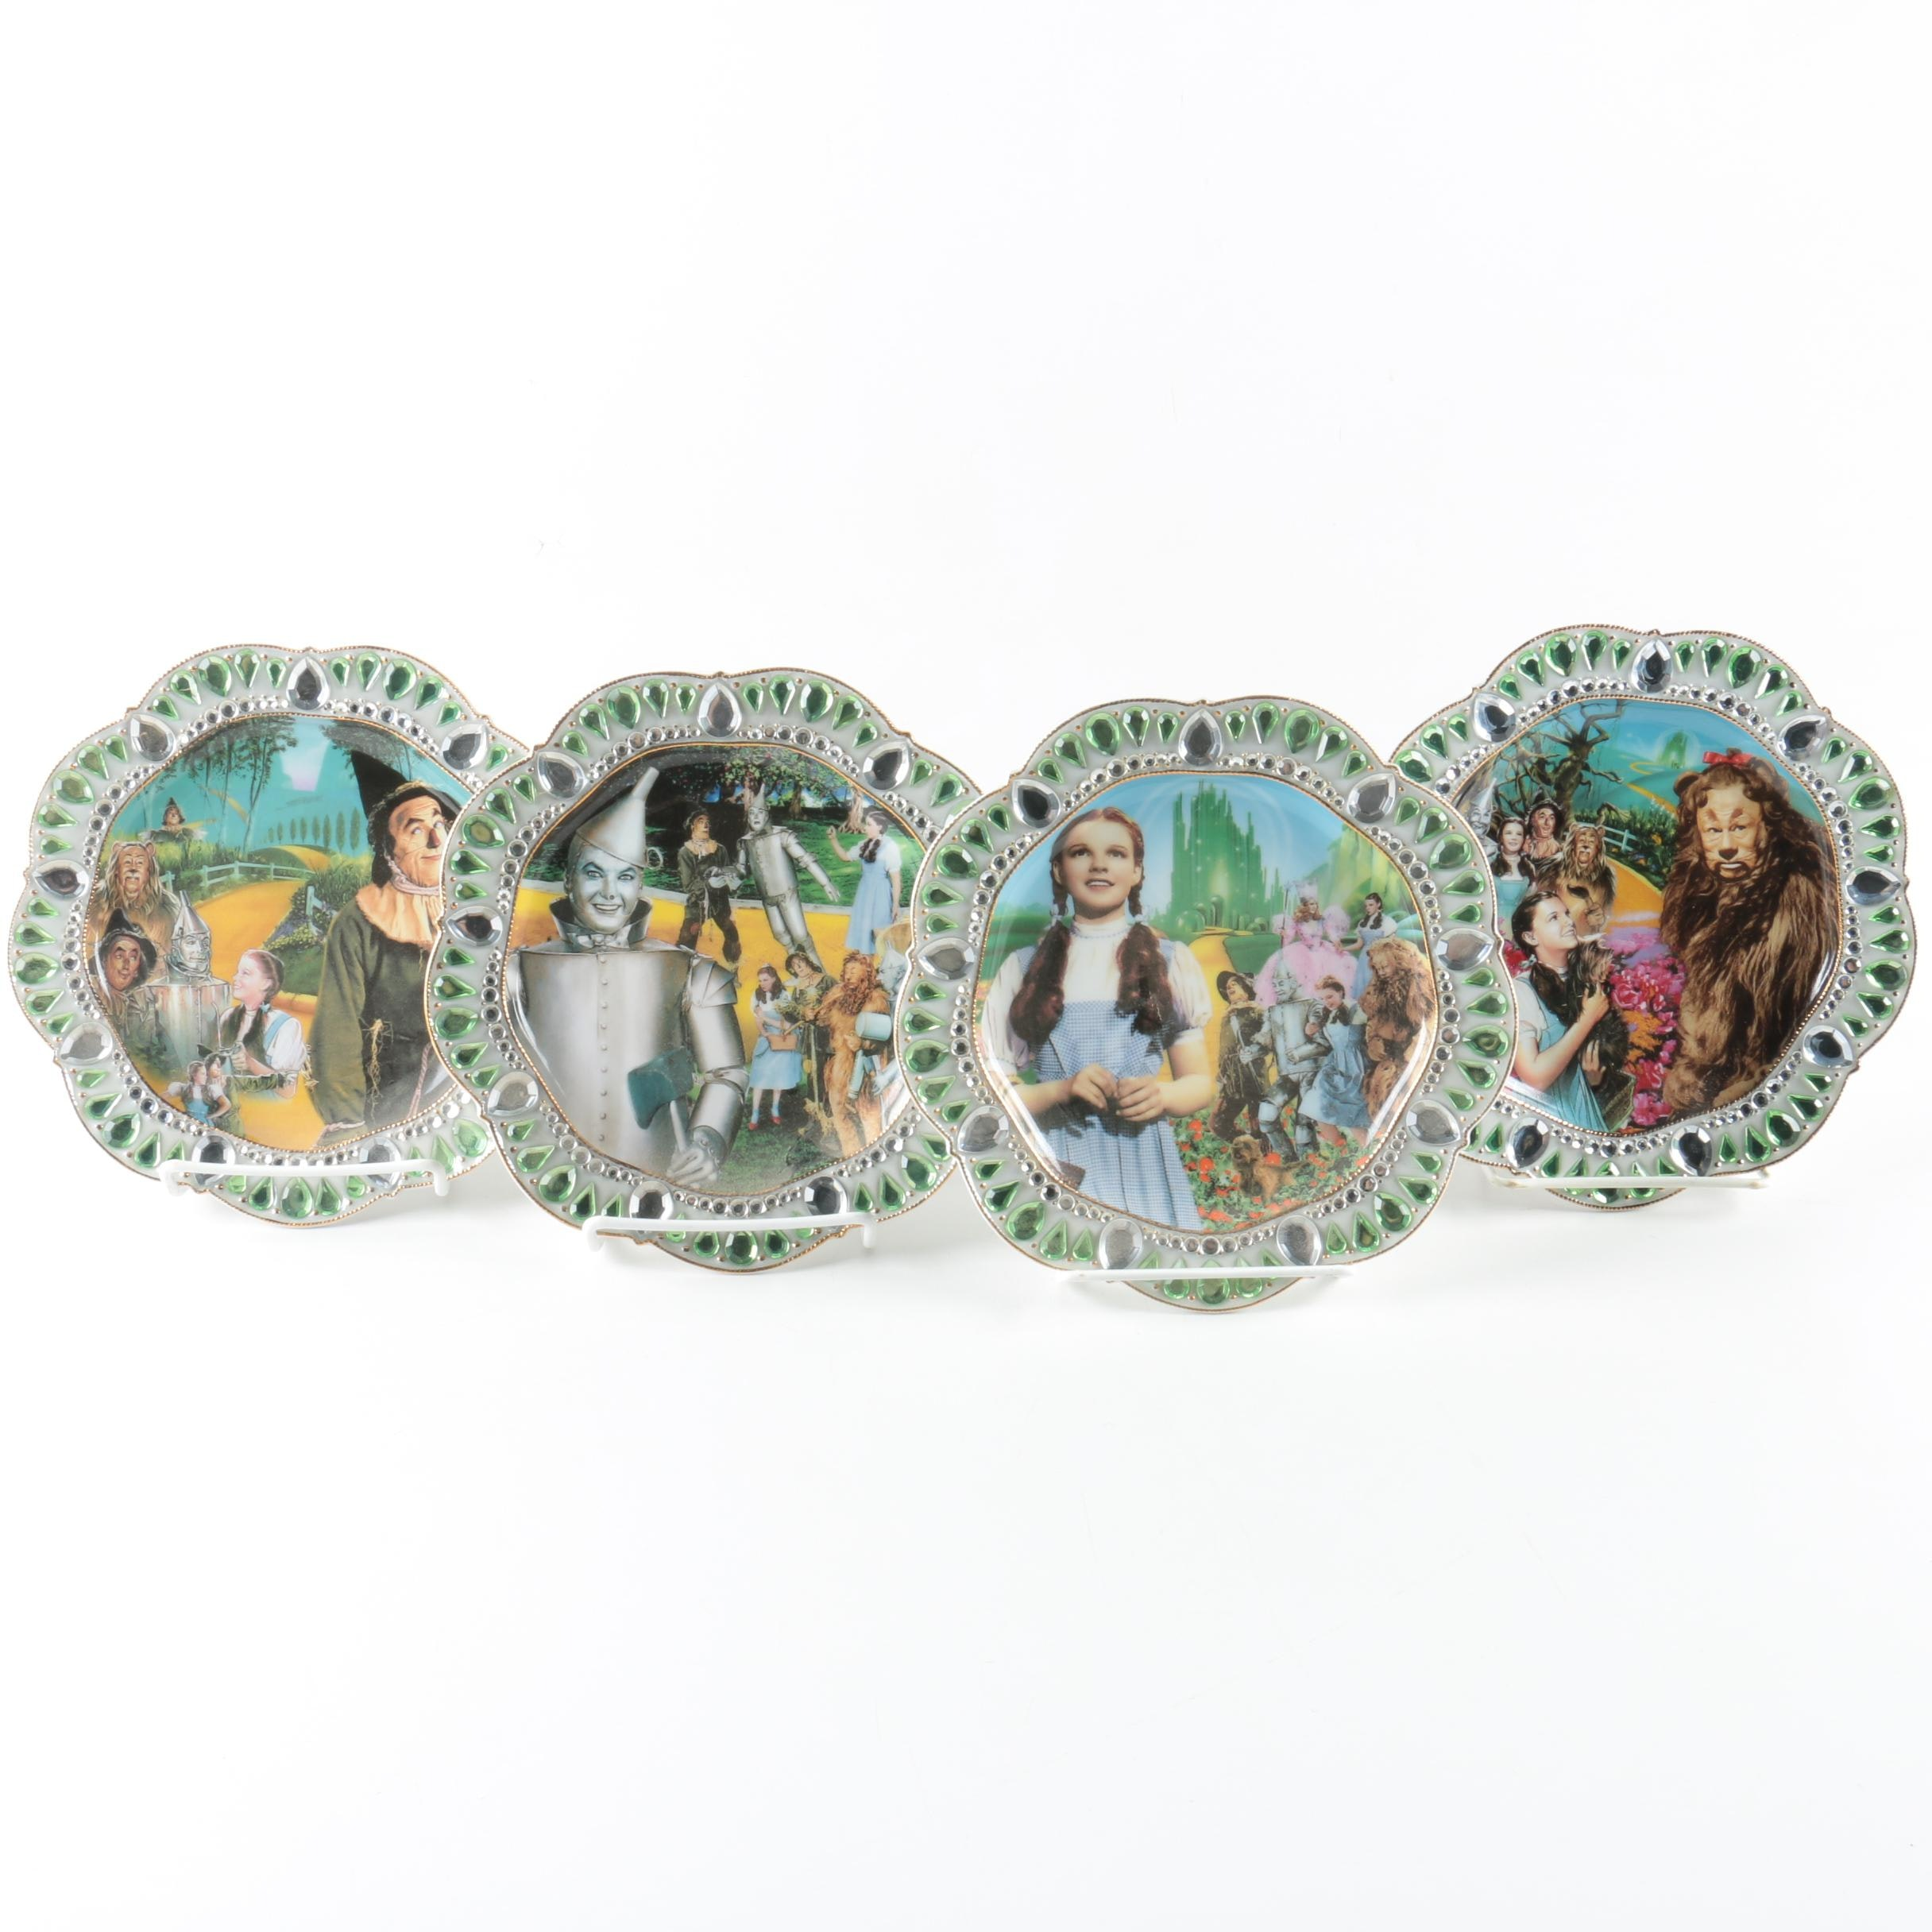 Limited Edition Bradford Exchange Porcelain and Rhinestone Wizard of Oz Plates